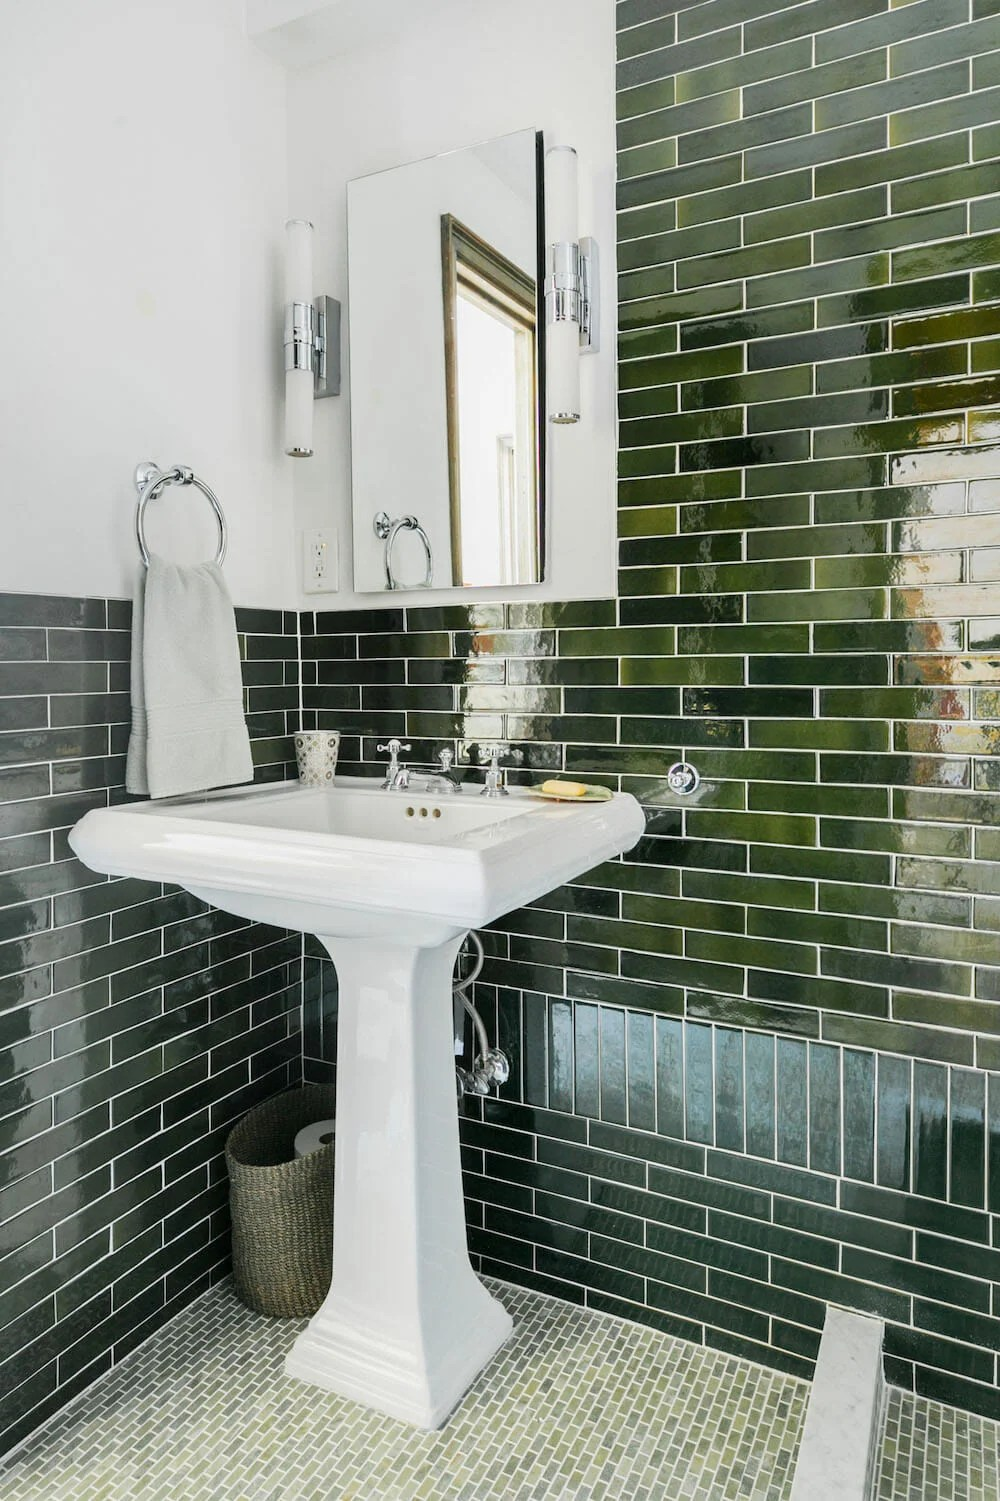 12 bathroom sink and vanity ideas from real renovations